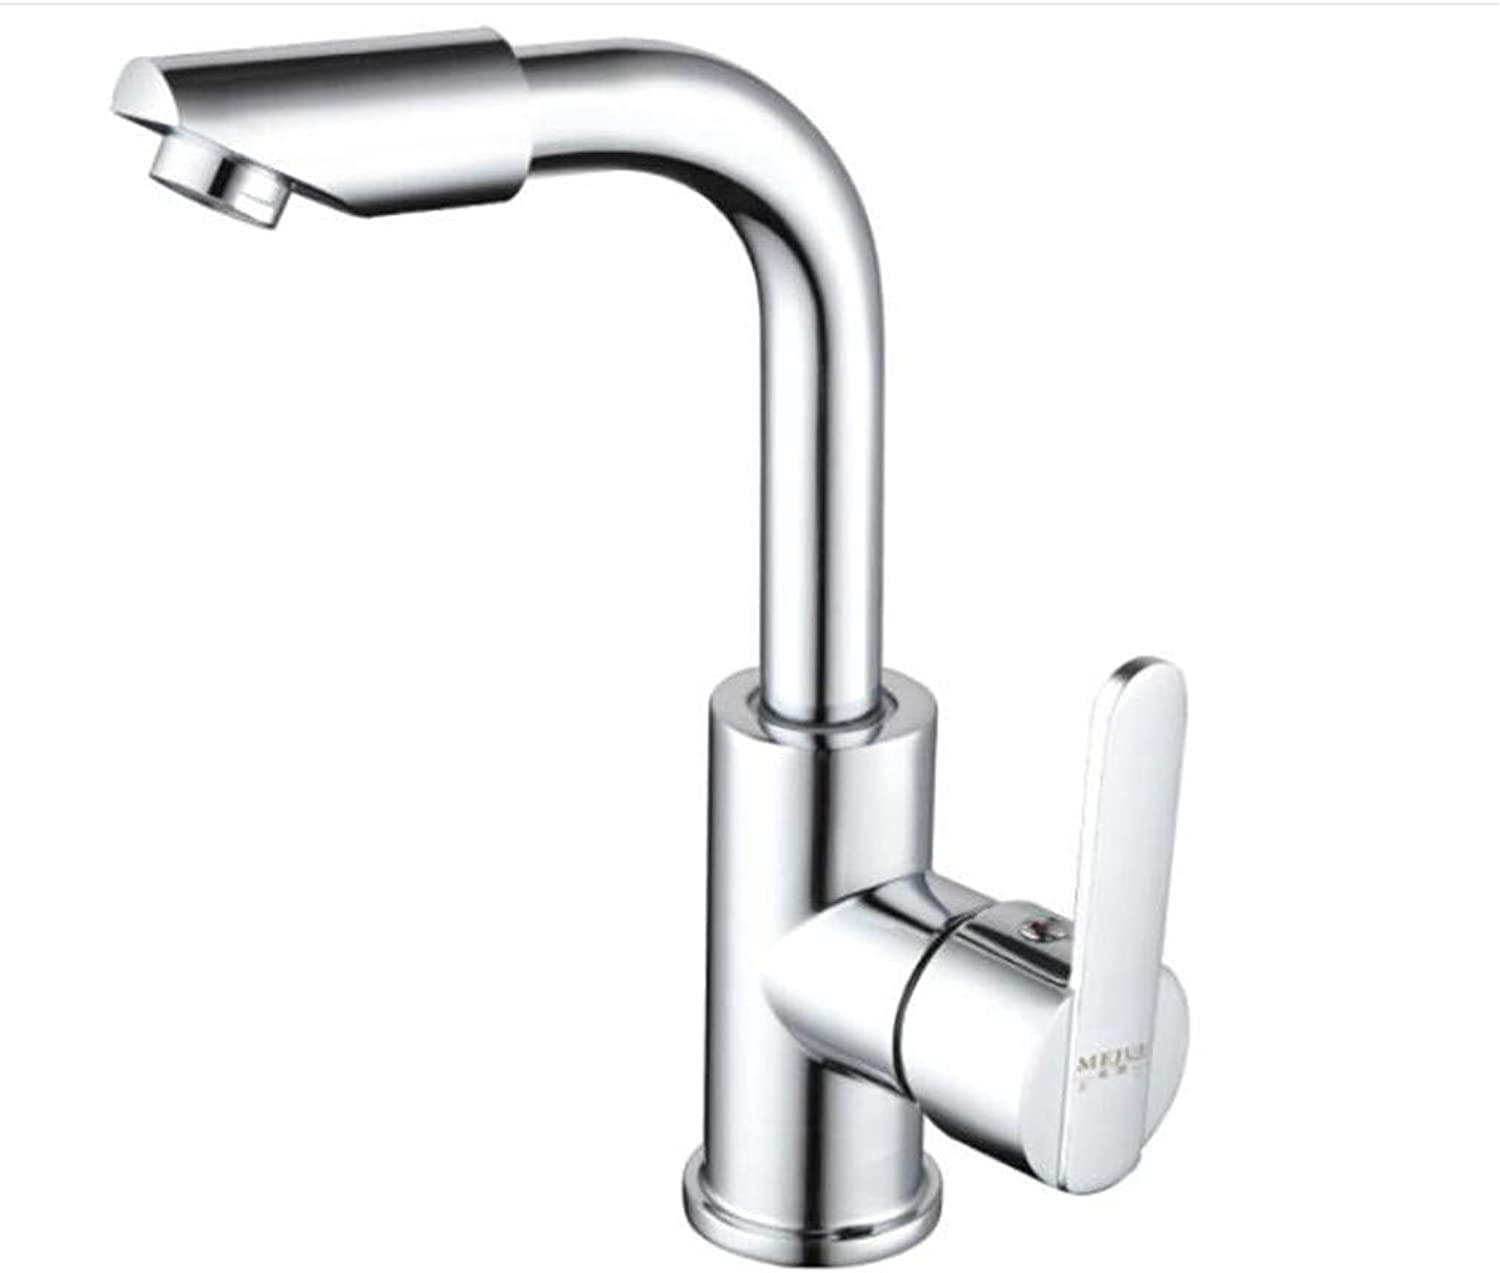 Bathroom Sink Basin Lever Mixer Tap 360 Degree redating Single Hole Copper Cold and Hot Face Pot Faucet